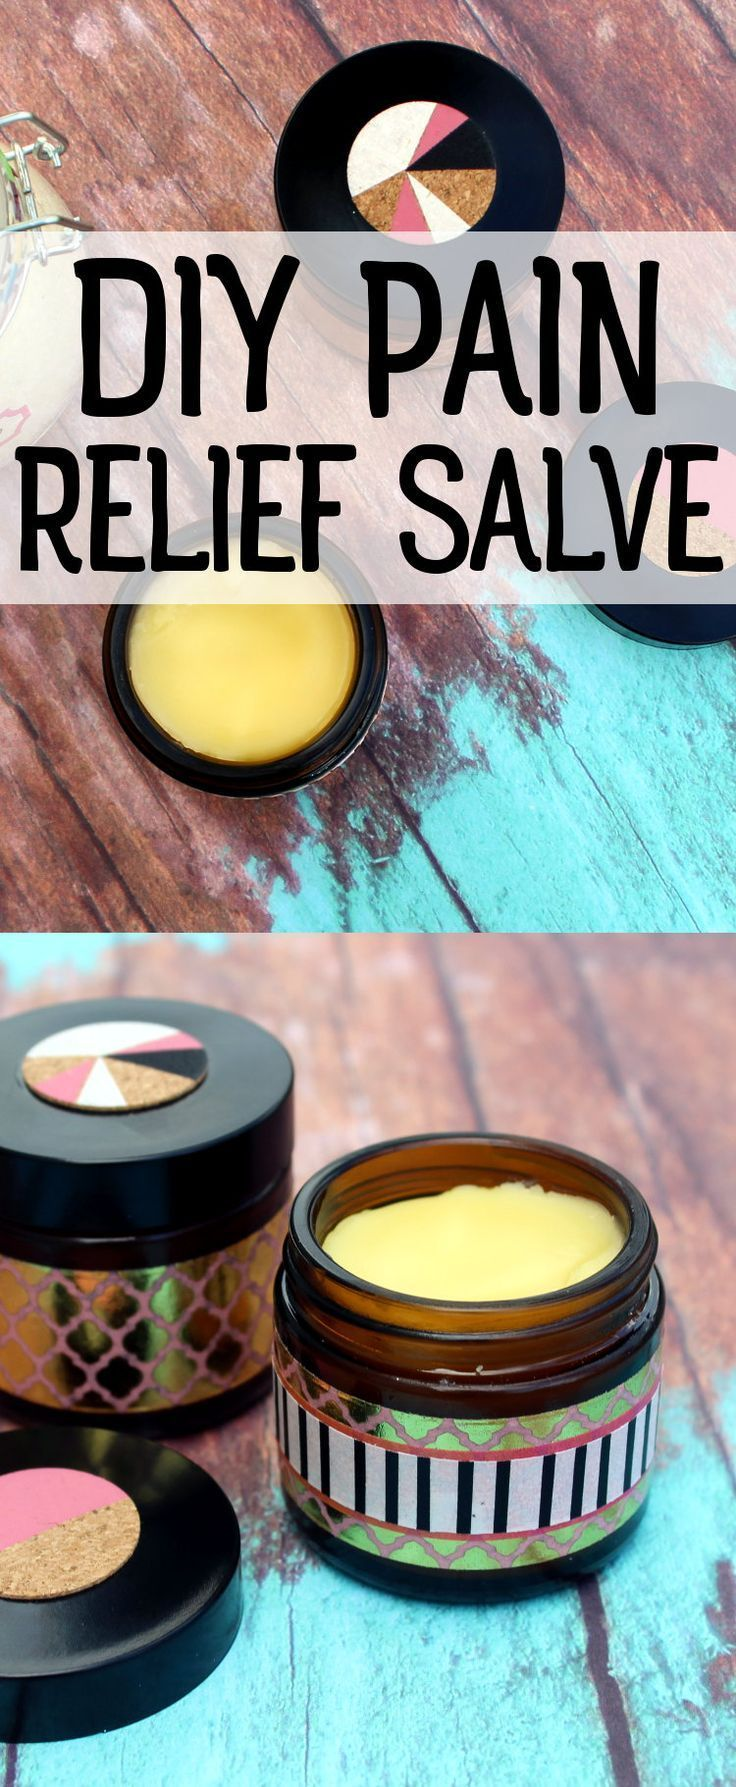 Arnica Pain Relief Salve Recipe for Sore Muscles and Inflammation! Whether you suffer from pain due to occasional bumps and bruises and sore muscles or more intense pain resulting from chronic conditions such as arthritis or carpal tunnel, this arnica pain relief salve recipe is the perfect natural remedy for muscle pain and inflammation! #painrelief #homeremedies #diy #salve #health